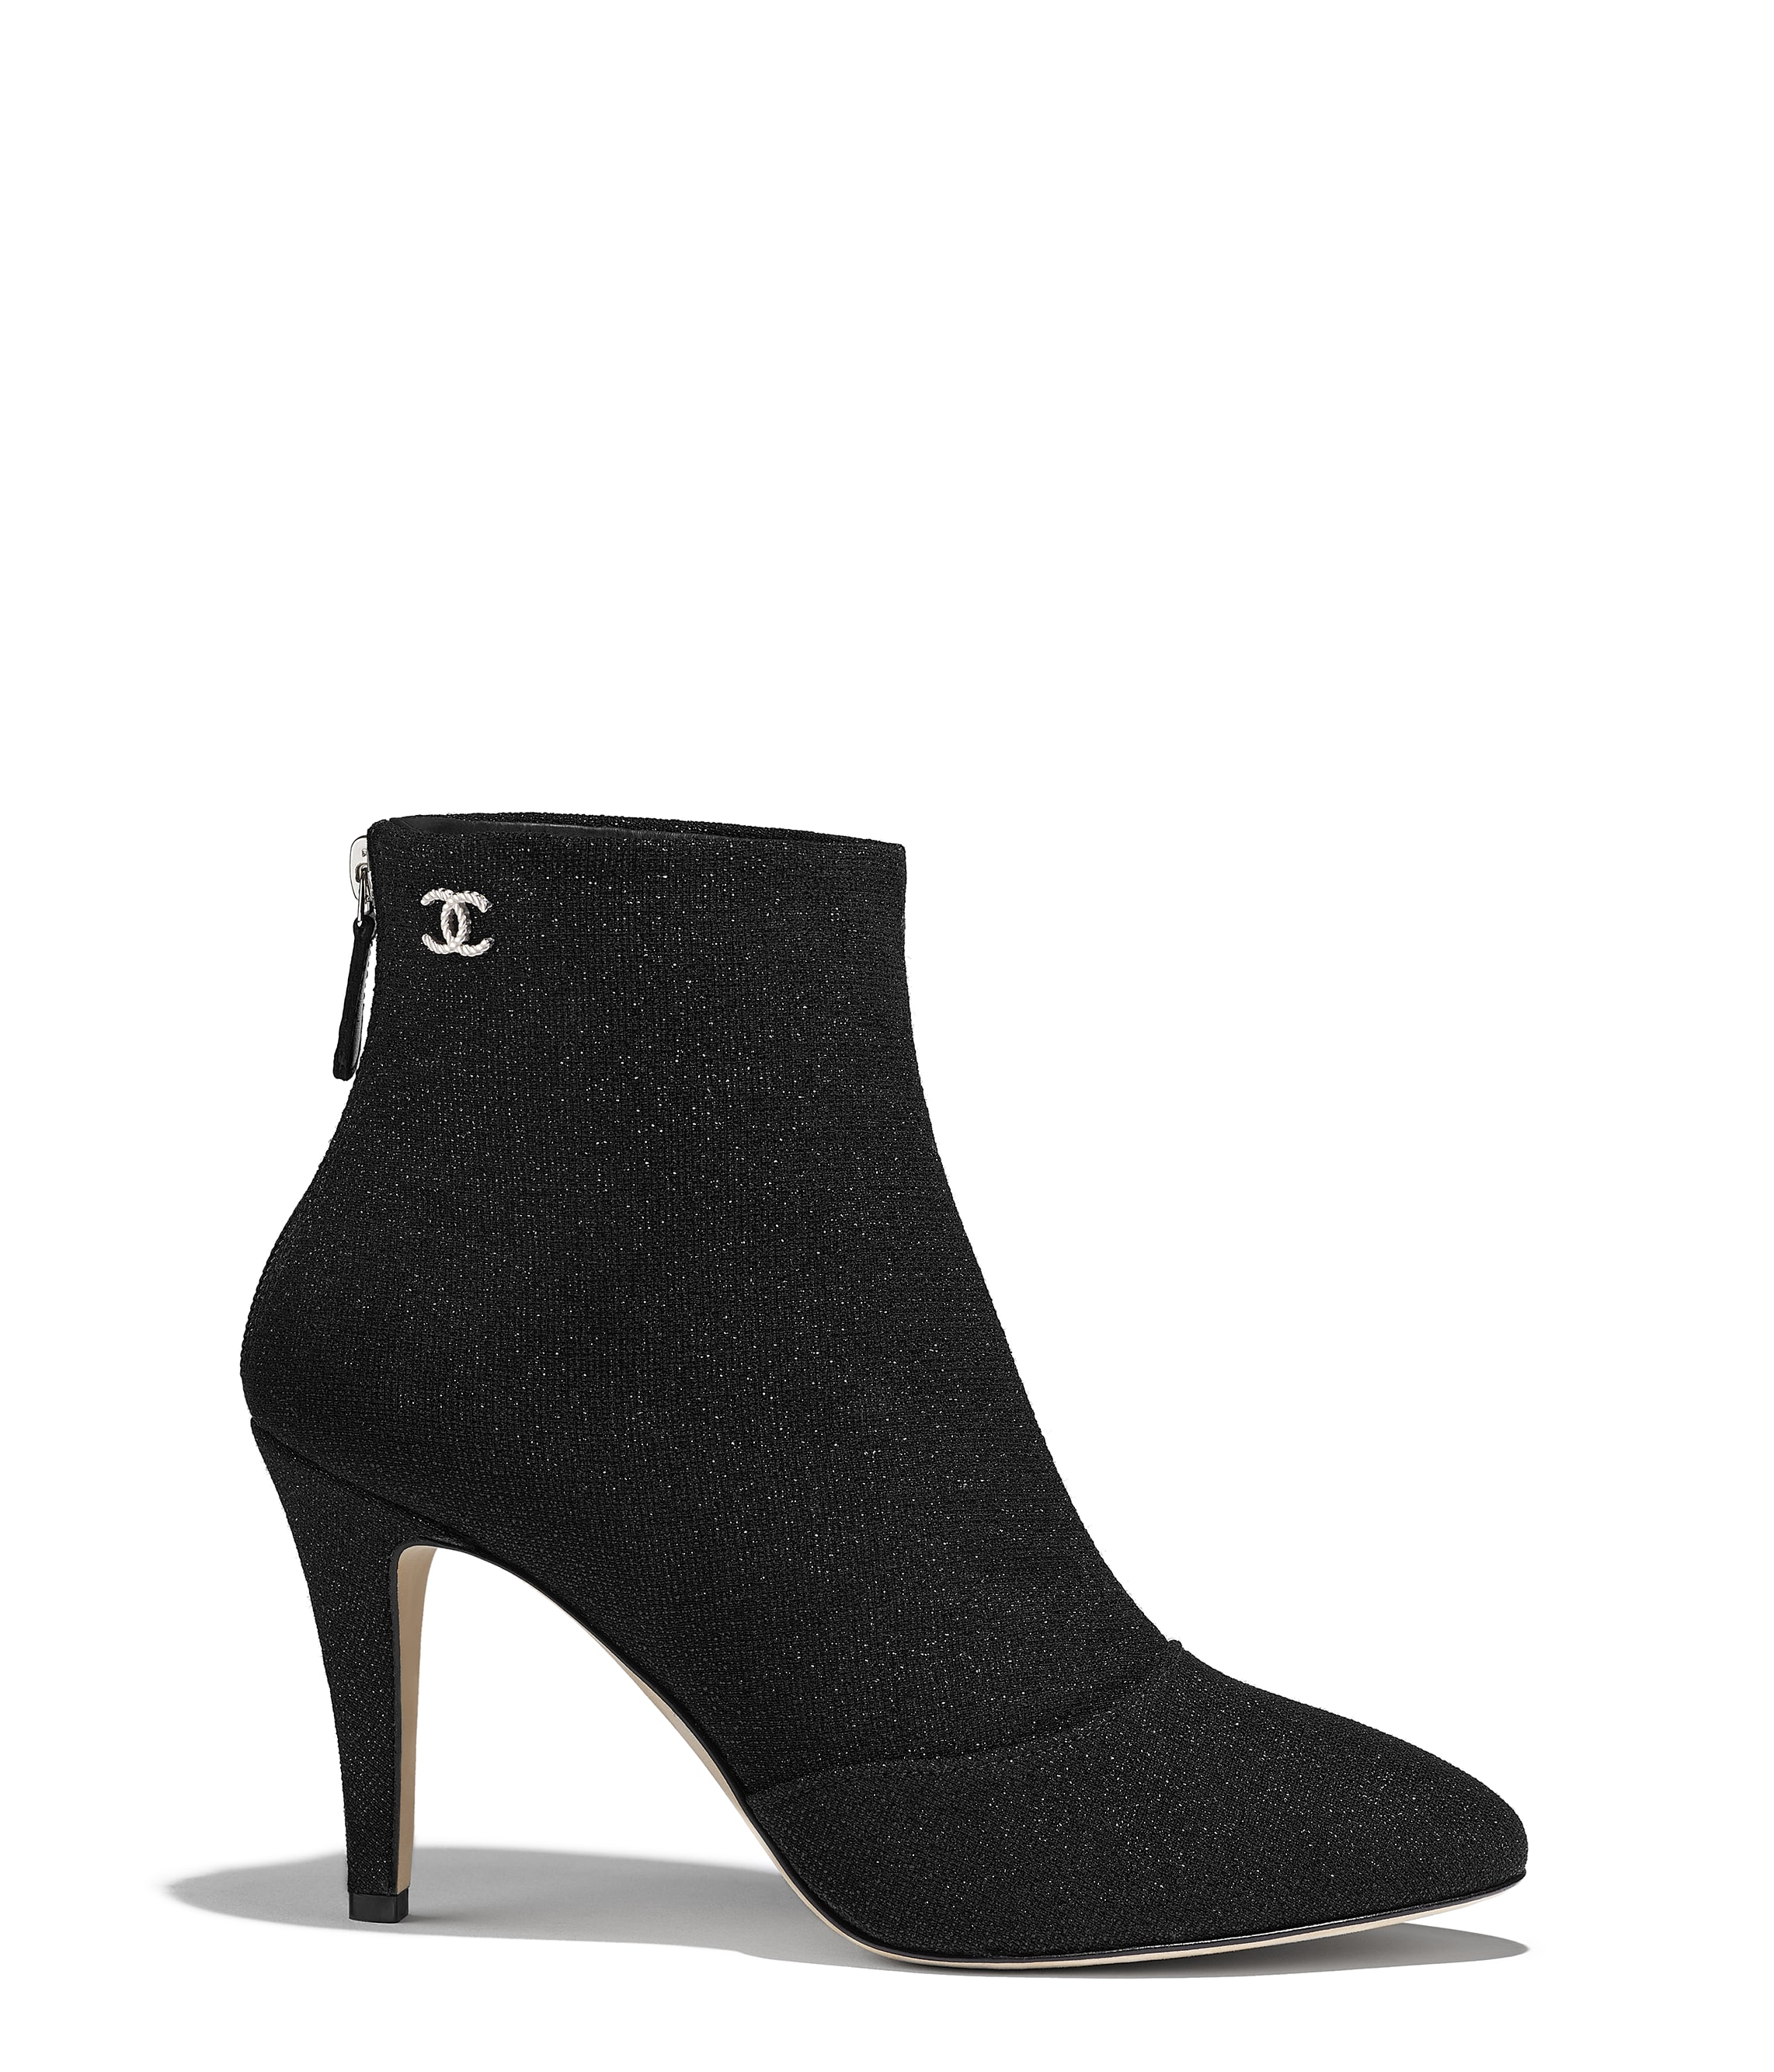 0bf317cdfd43 Short Boots - Shoes - CHANEL